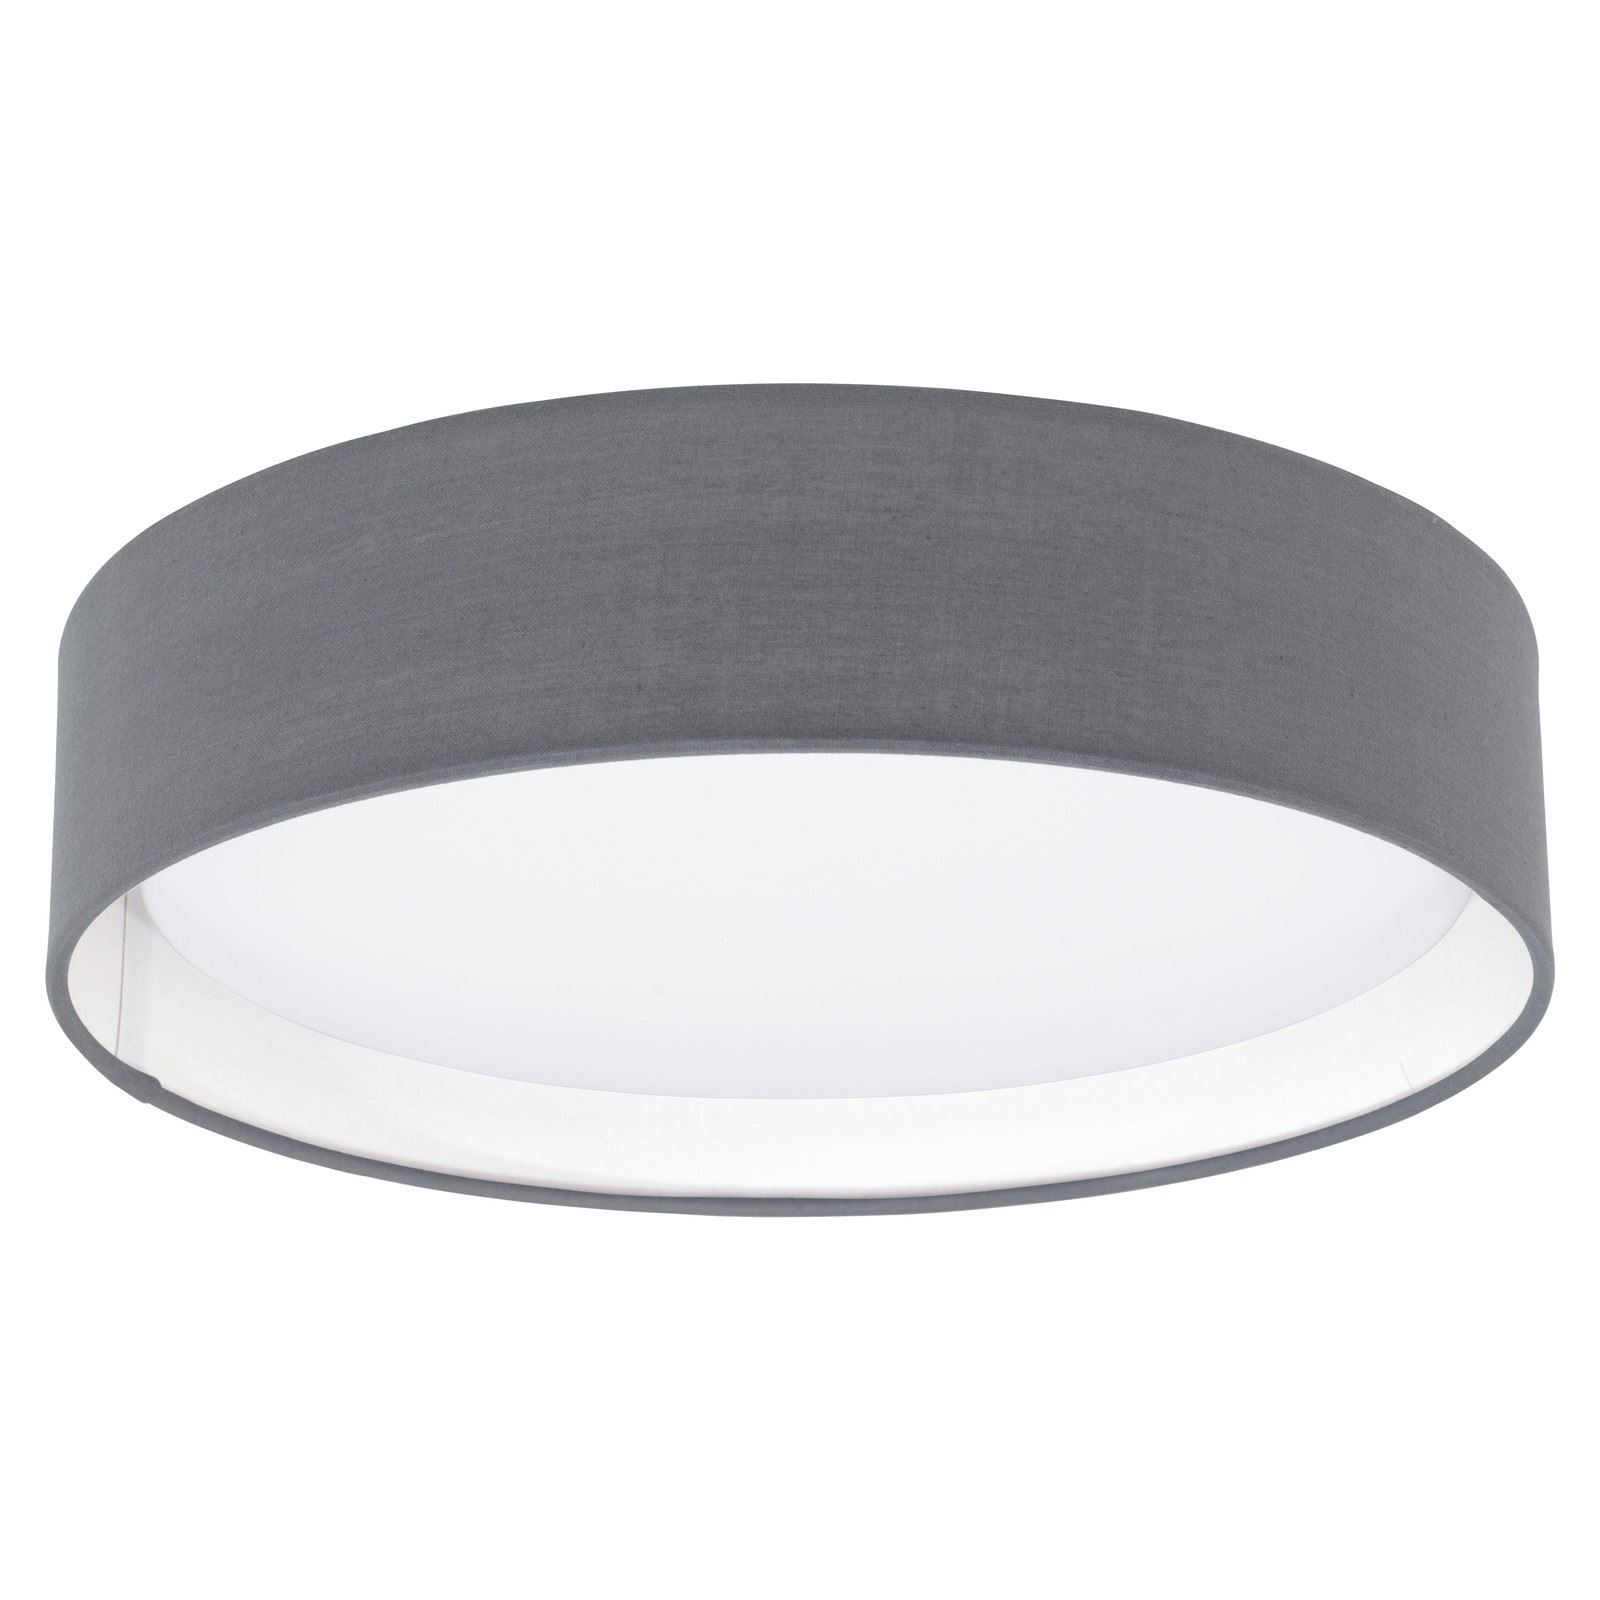 PASTERI LED Modern Ceiling Light Plastic Steel Fabric Grey-Matt Shade